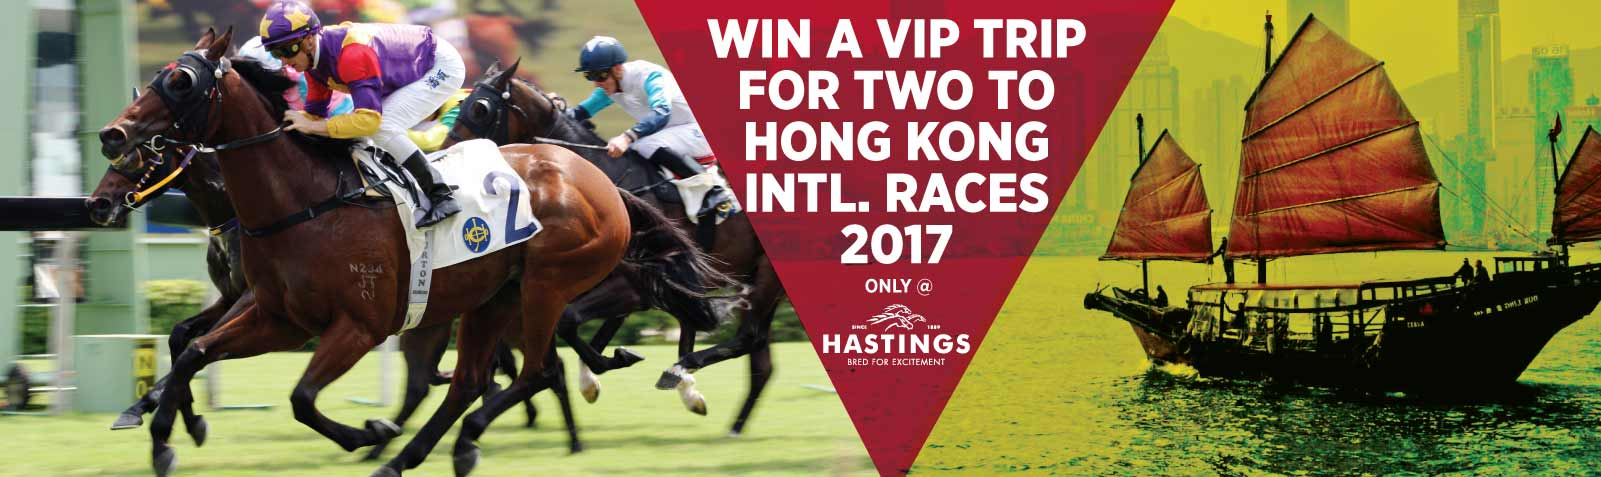 MKT17-003-Hong-Kong-Racing-Contest-Slider-web